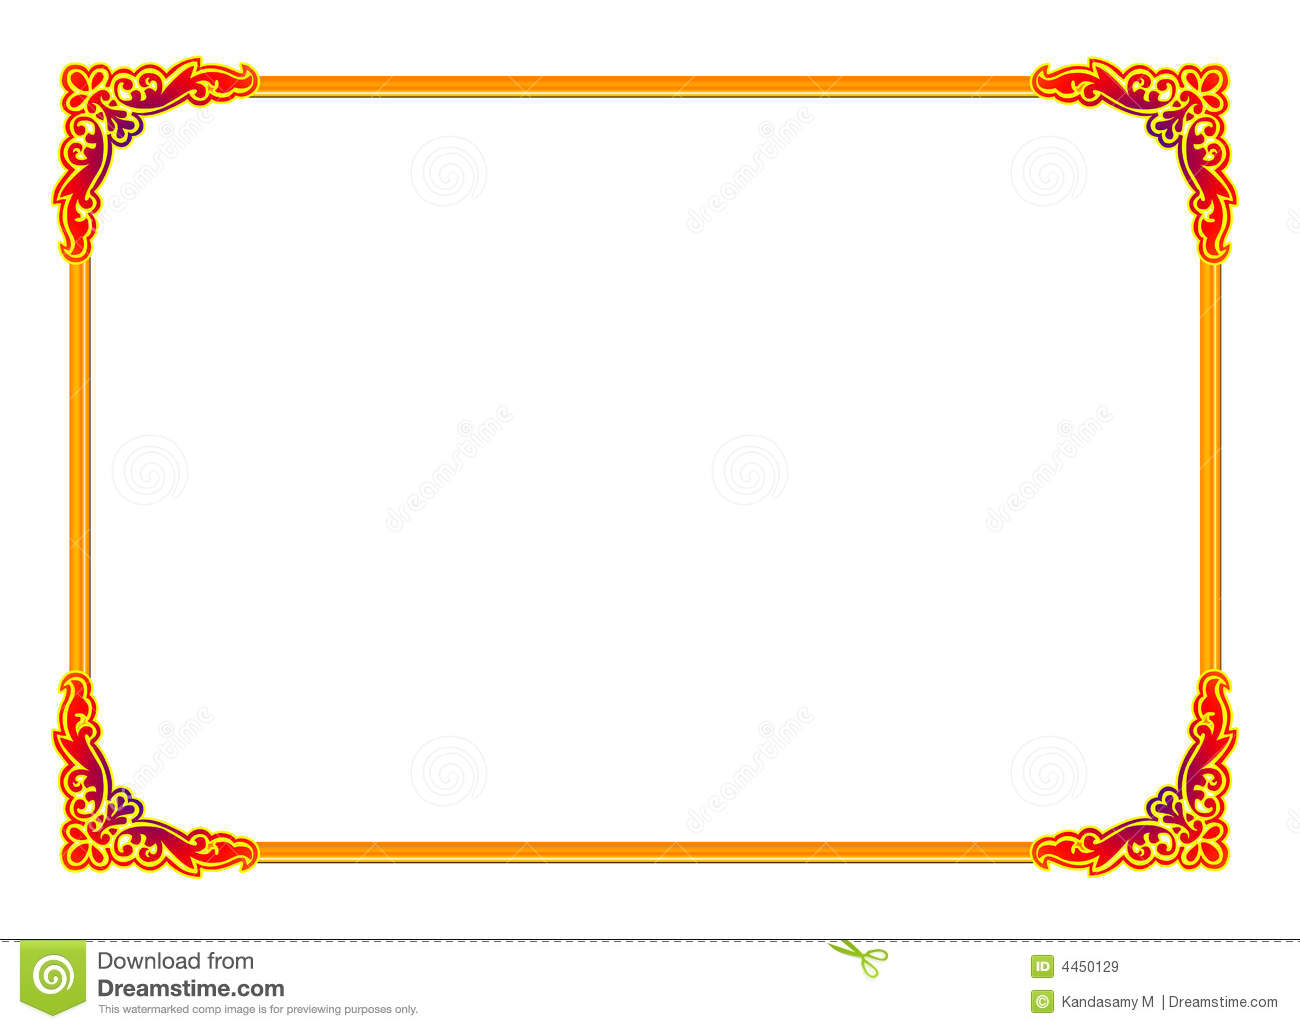 Royalty Free Stock Images Gold Frame Image4450129 on Blue Border Clip Art